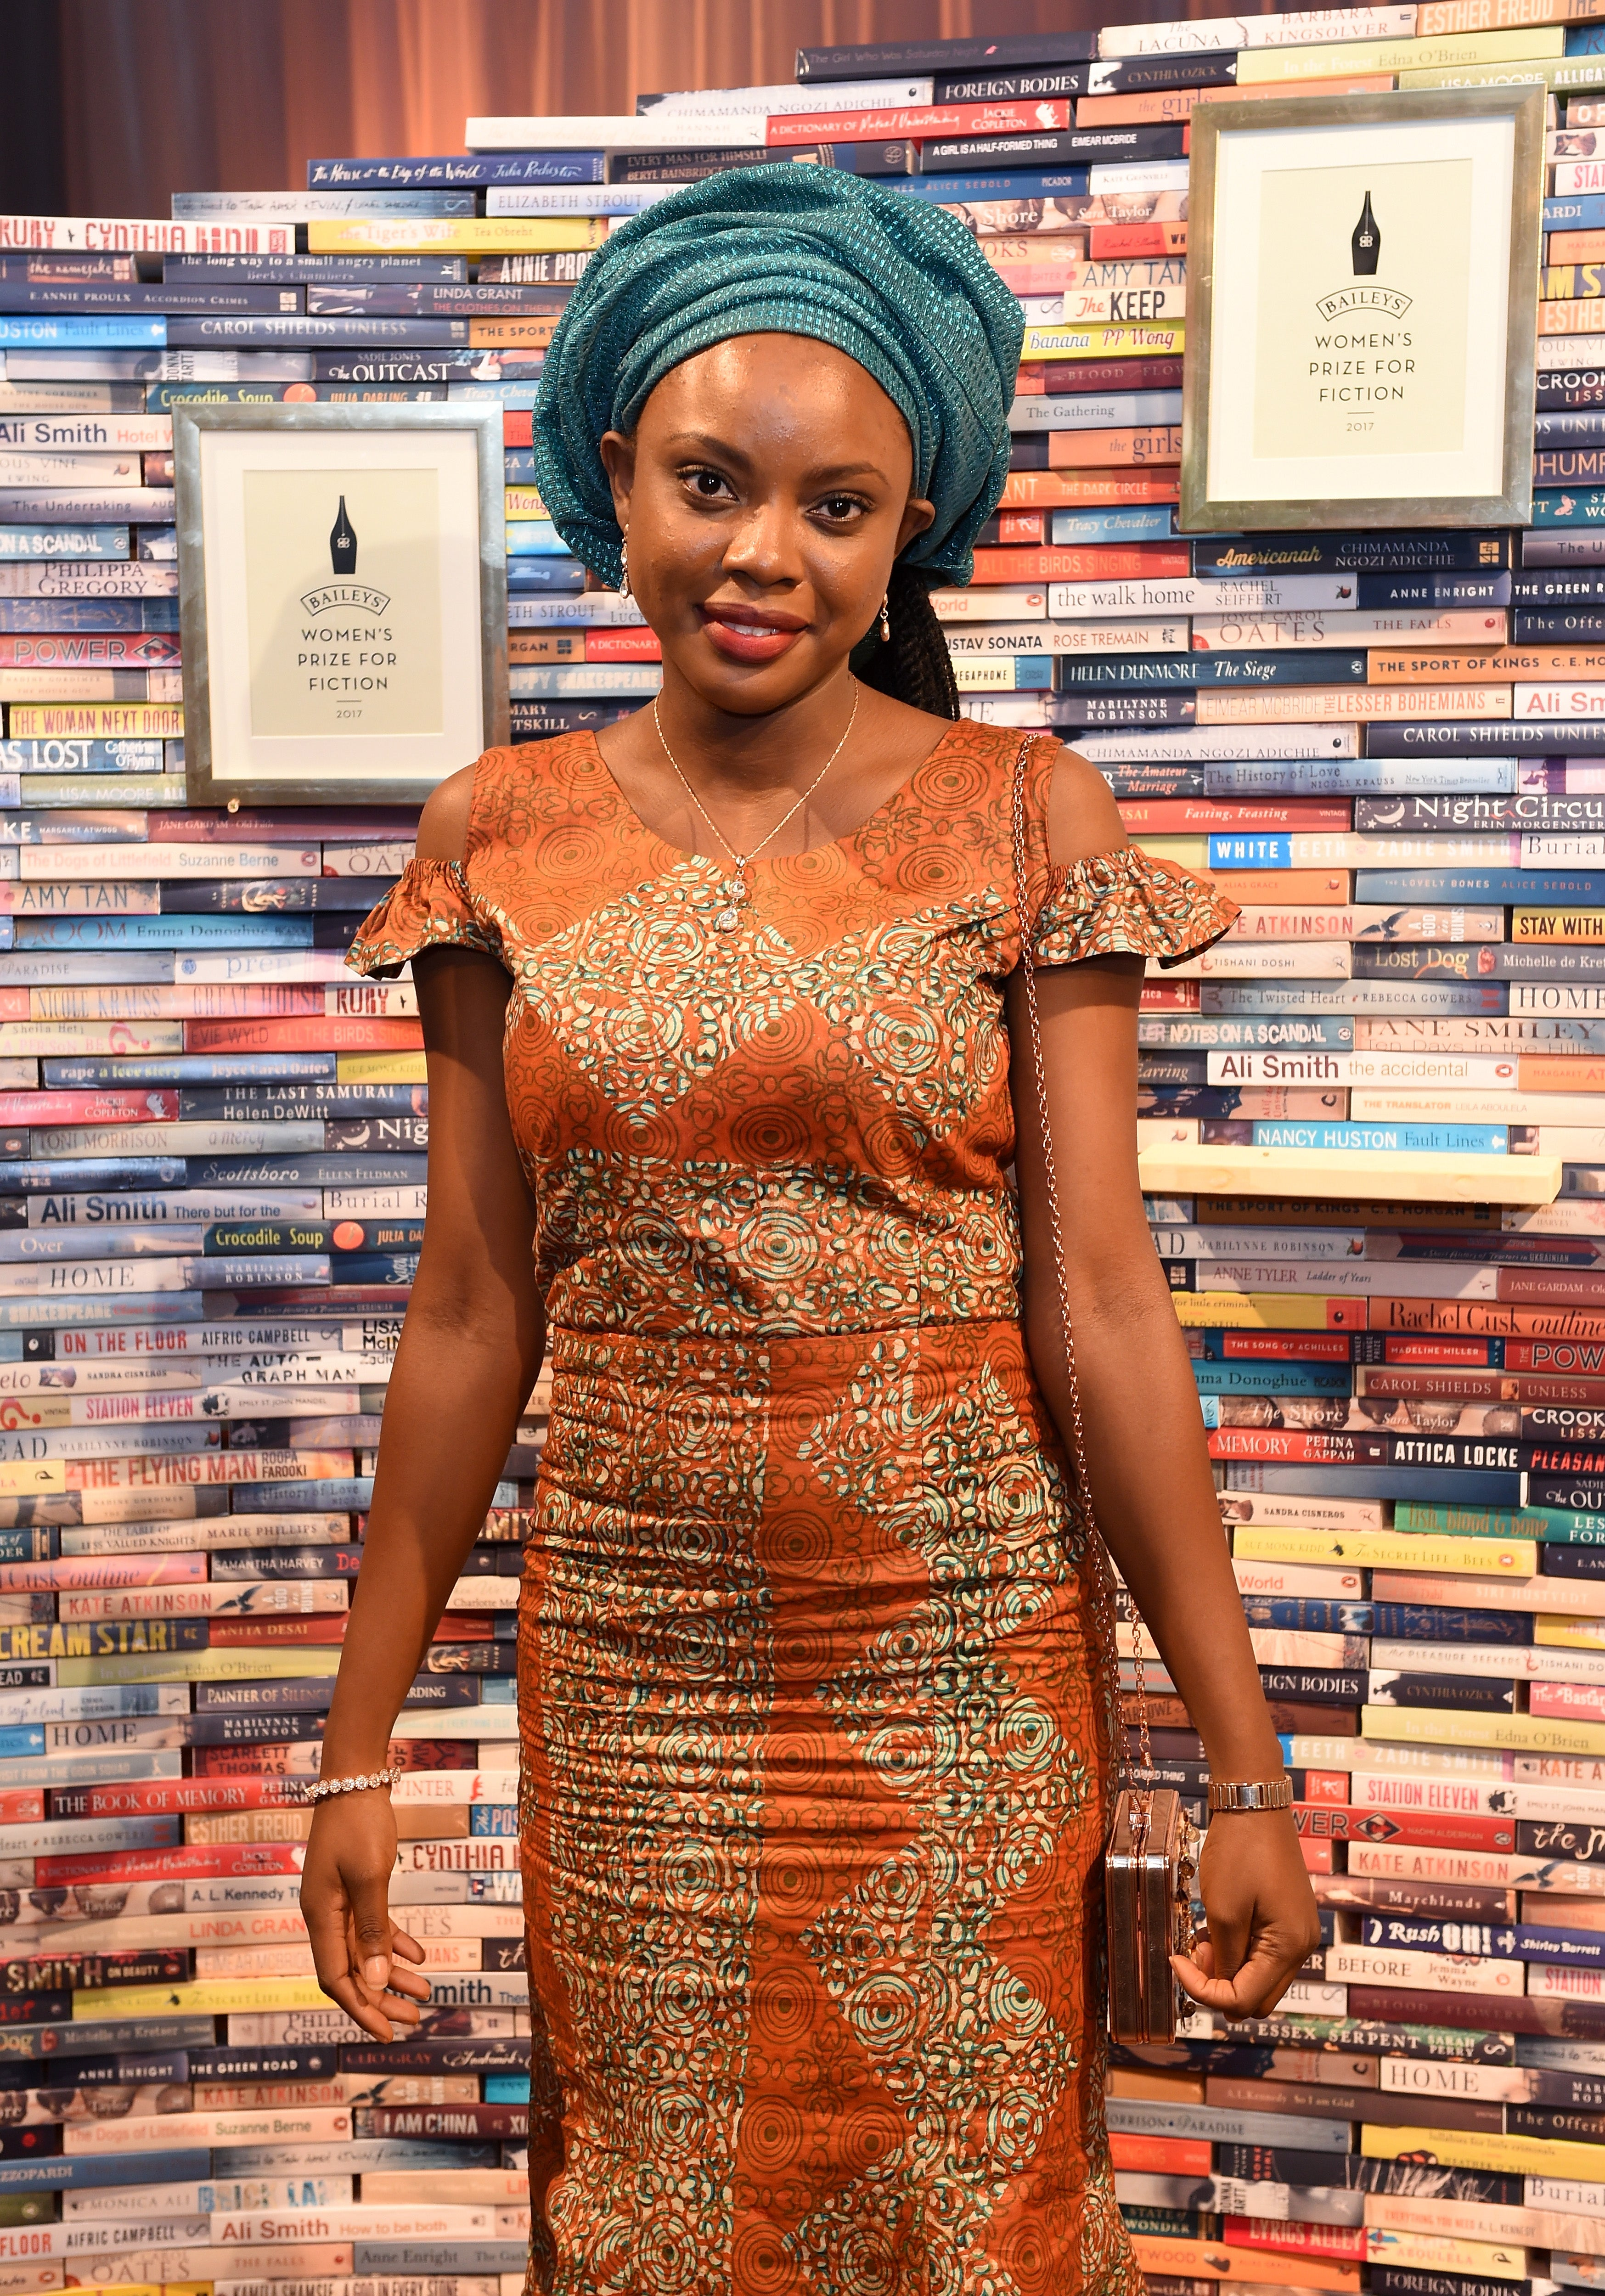 MUST READ: Ayobami Adebayo's Debut Novel 'Stay With Me' Confronts The Sensitive Issue Of Infertility In African Culture